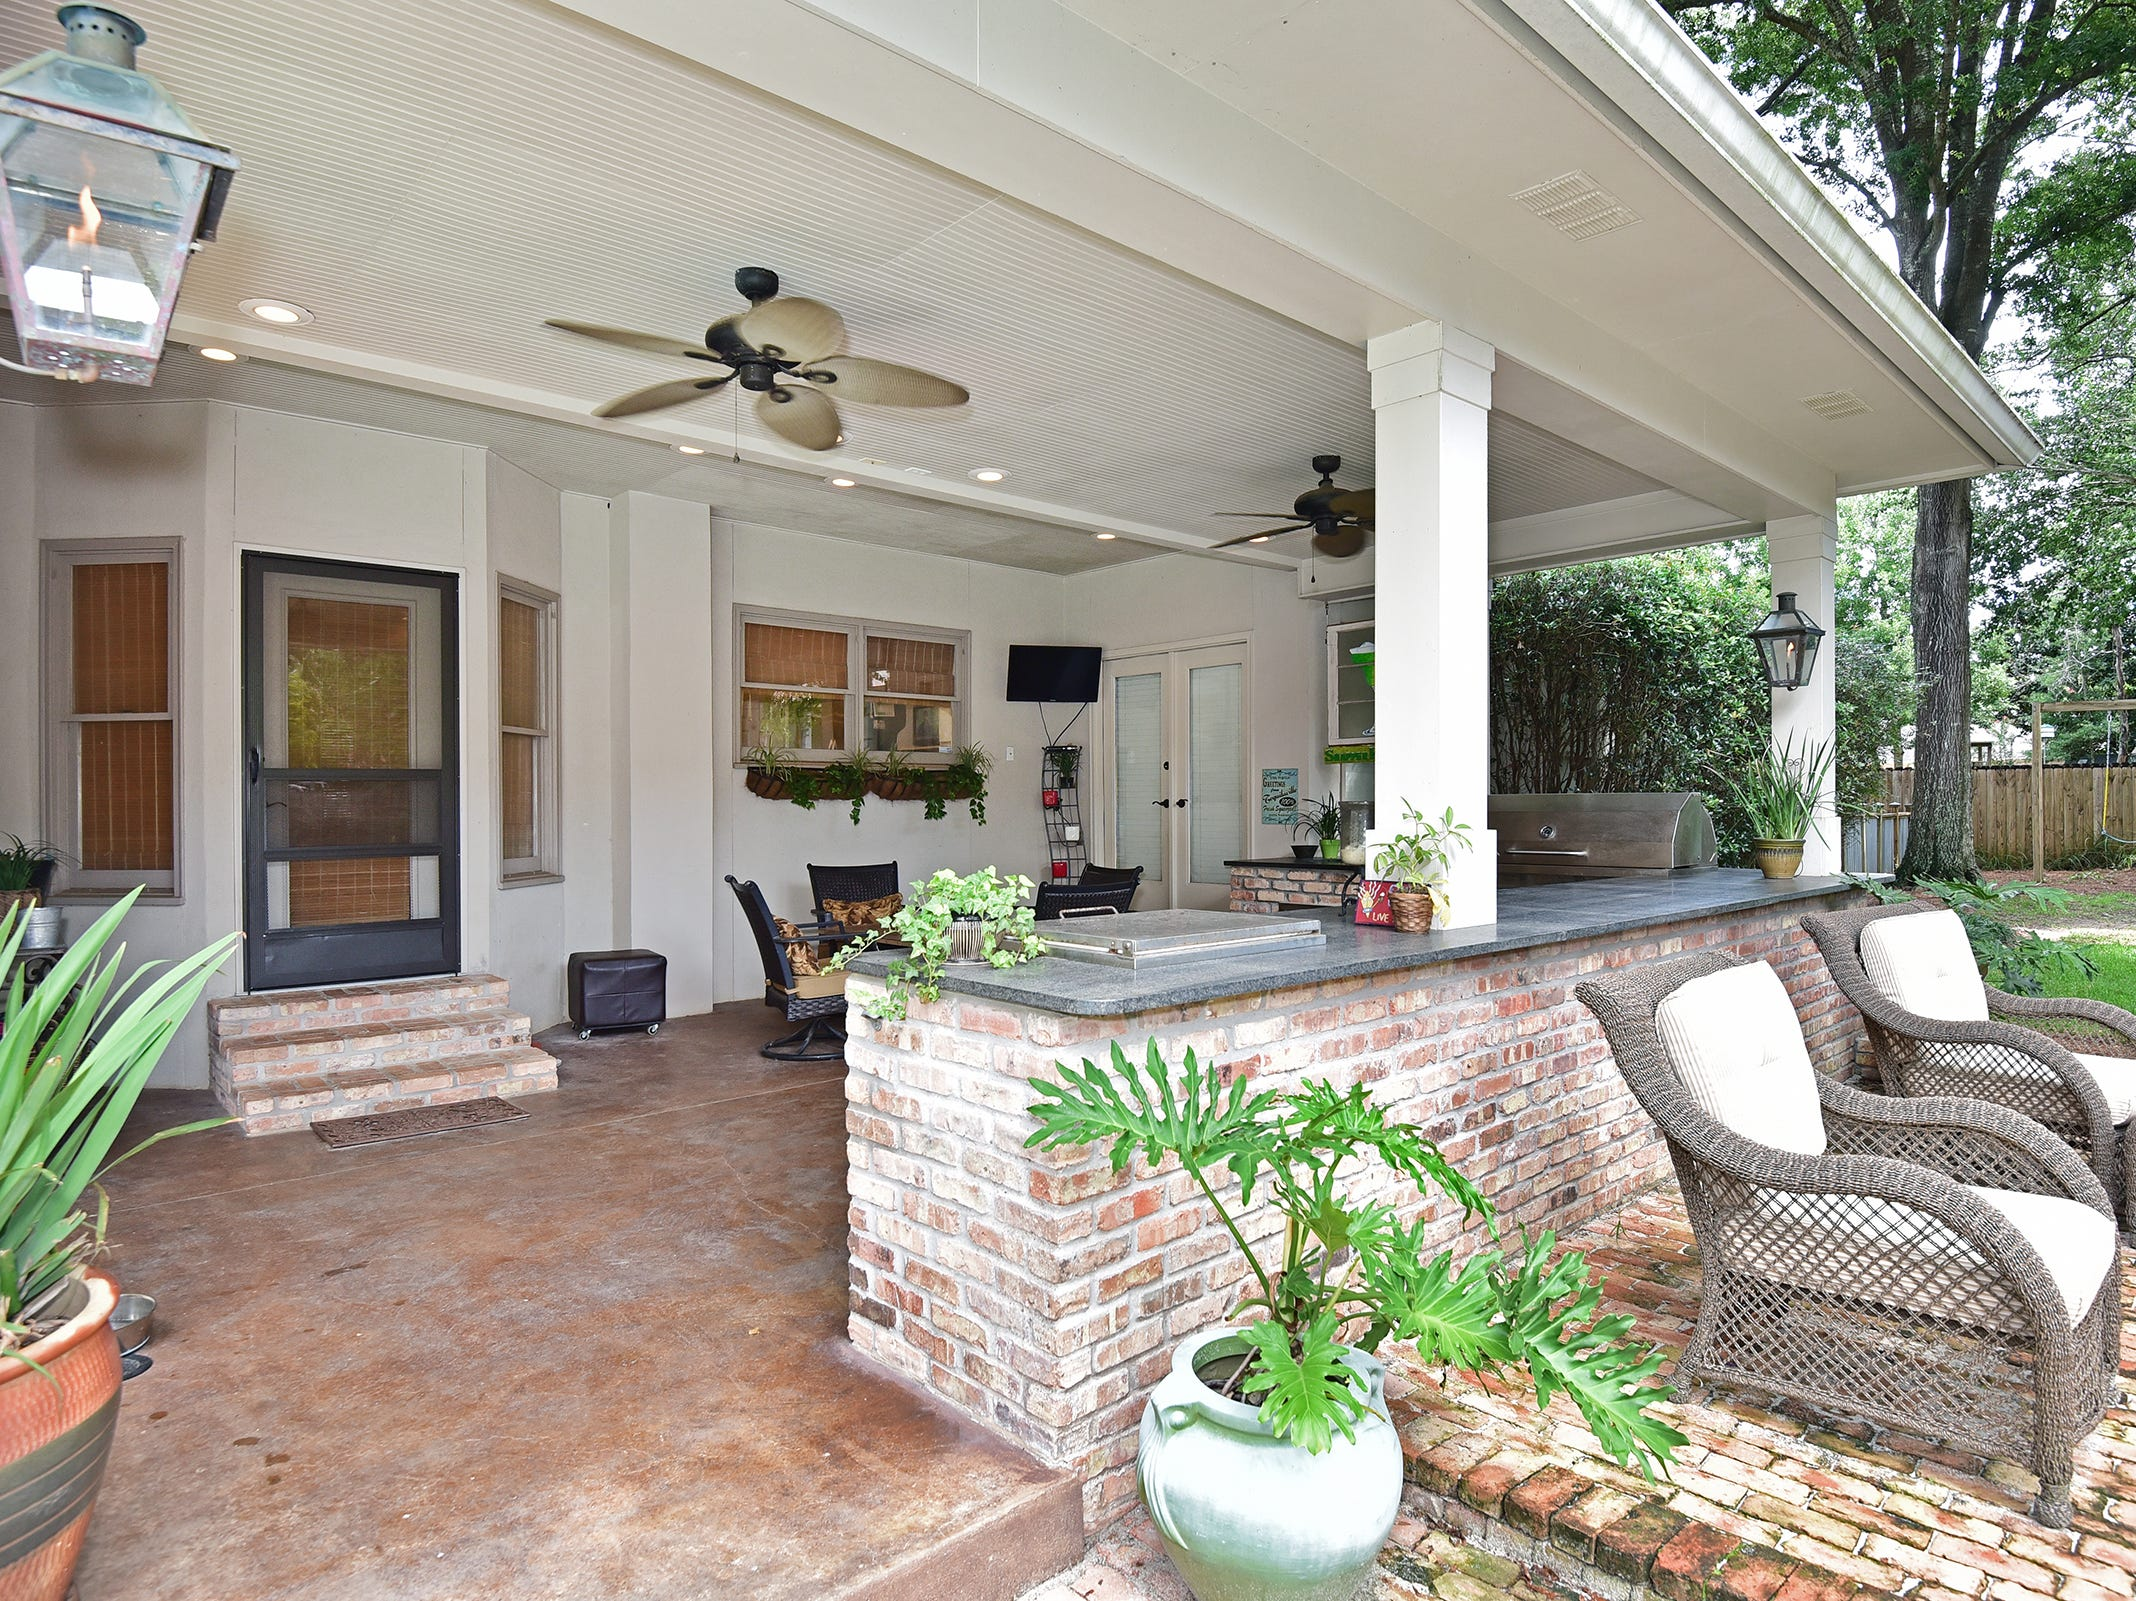 2474 Semur Rd., the outdoor space is perfect for meals al fresco.